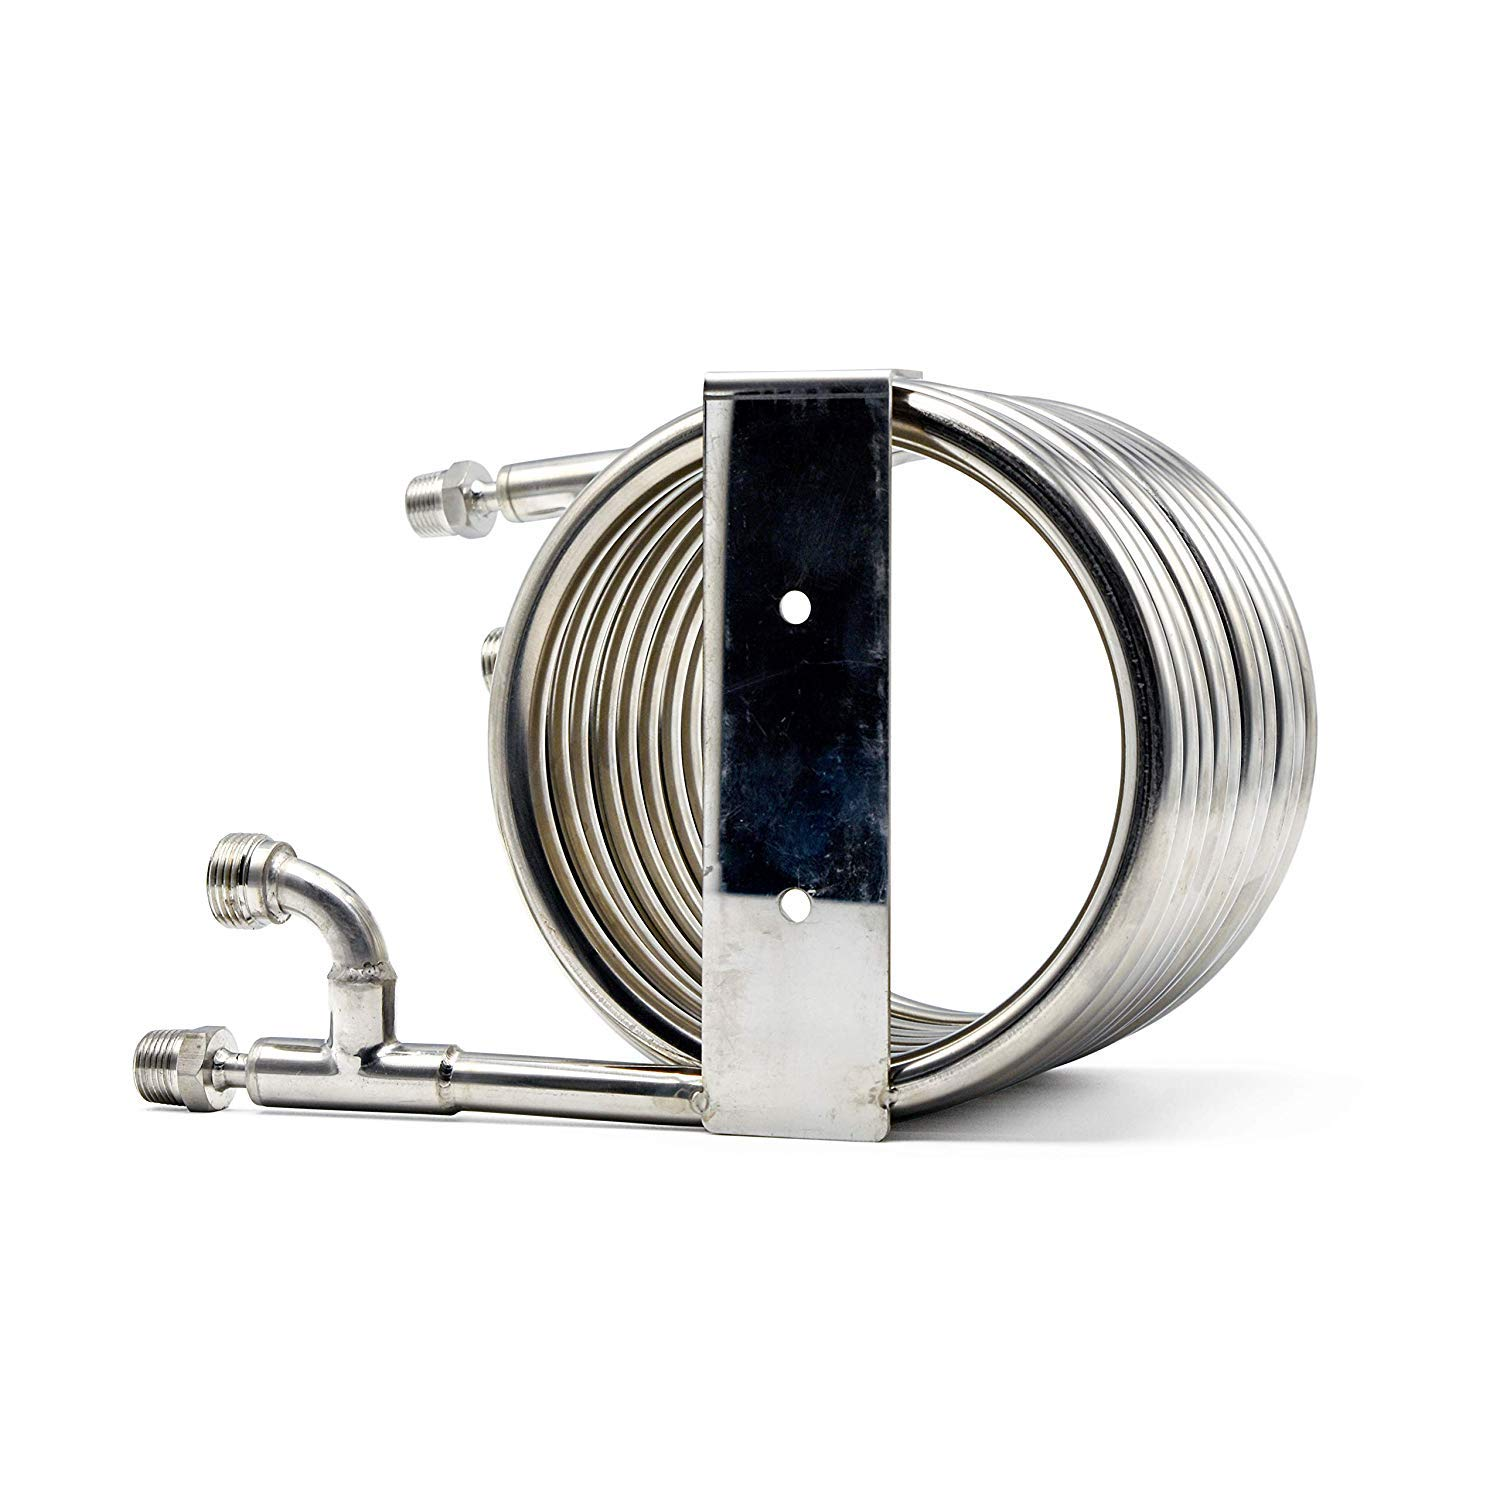 Northern Brewer Stainless Steel Counterflow Wort Chiller by Northern Brewer (Image #3)